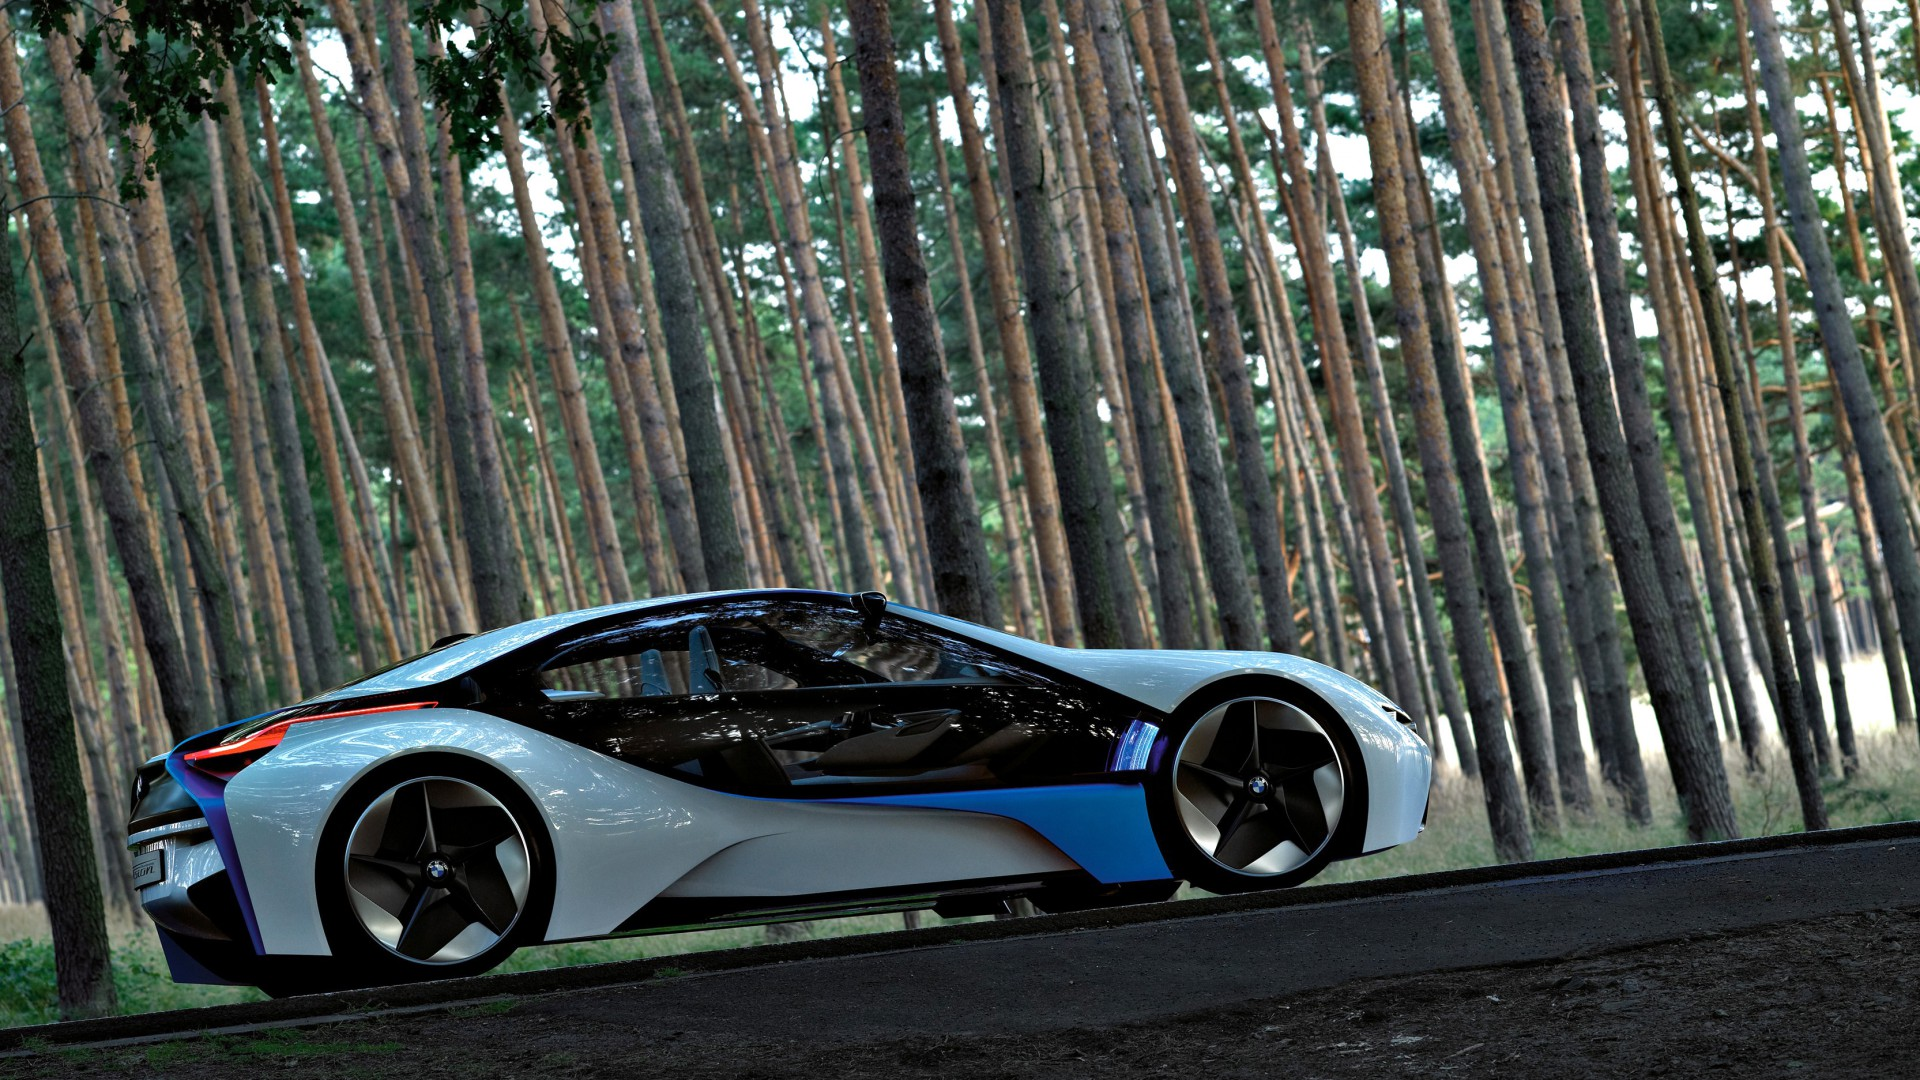 Tags: BMW Vision, electric cars, VL, BMW, Best Electric Cars 2015, concept, side, forestWallpaper BMW Vision, electric cars, VL, BMW, Best Electric Cars 2015, concept, side, forest, Cars & Bikes / Search Results - 웹